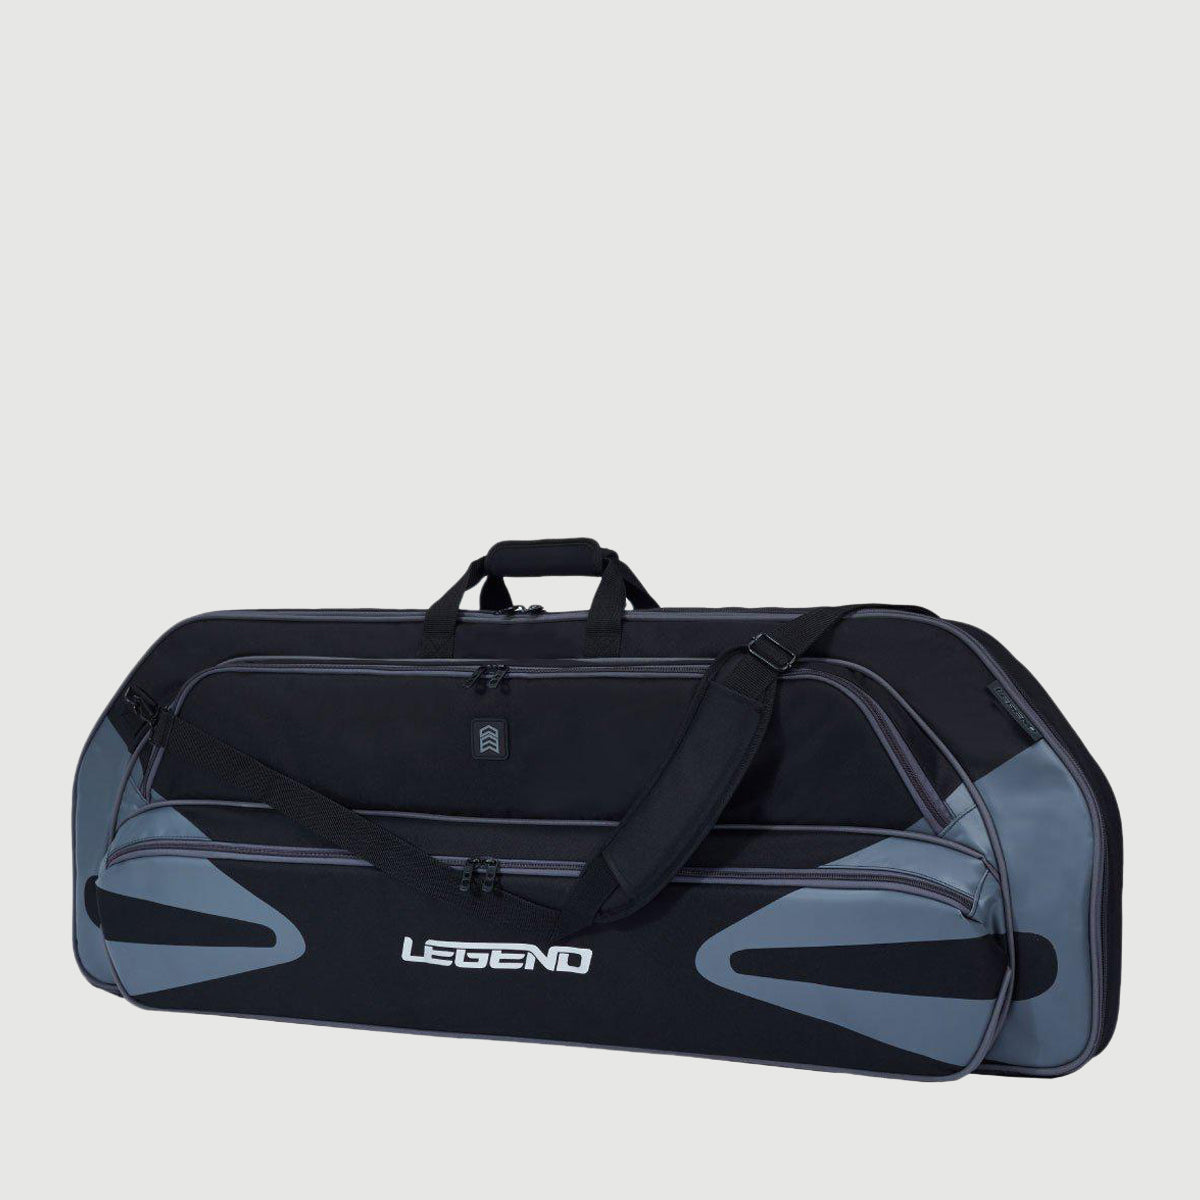 "Legend Monstro Compound Bow Case - 44"" Interior-Legend Outdoor Industries"